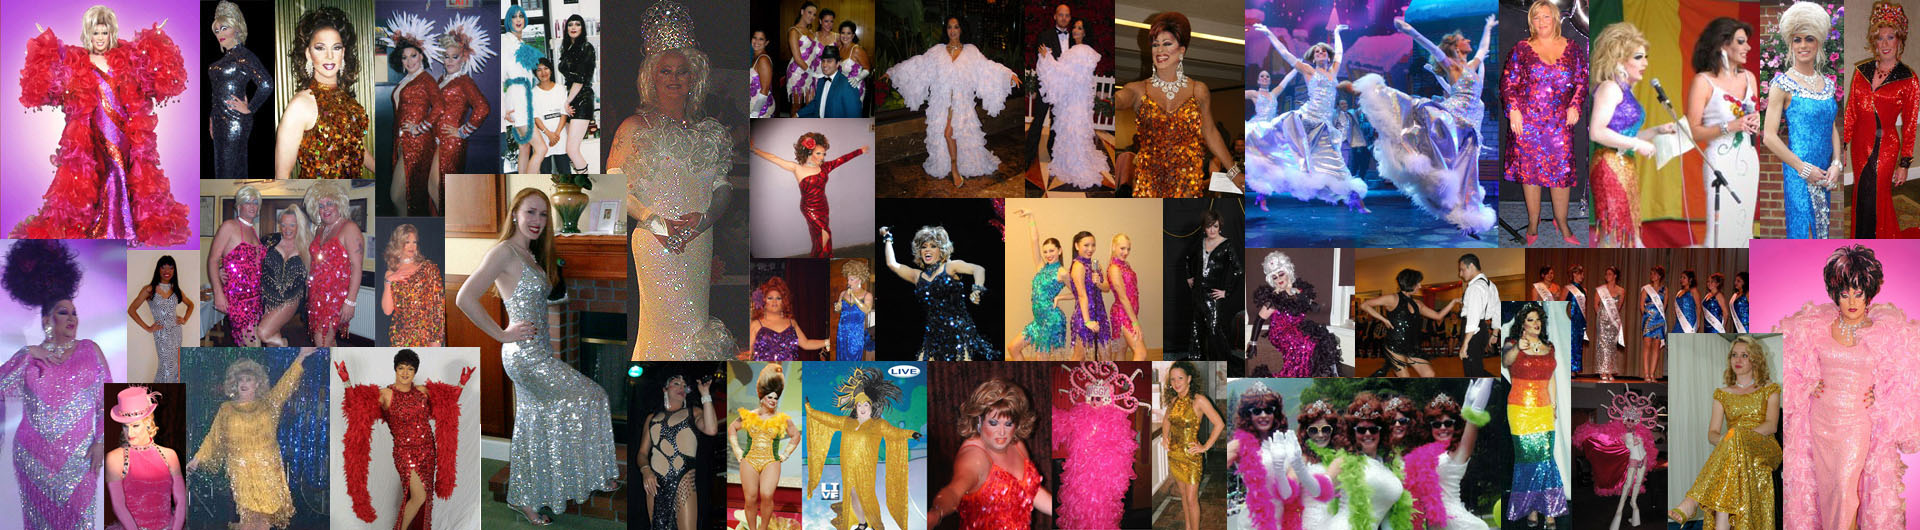 Pictures of women wearing sequin gowns and dresses made by SequinQueen